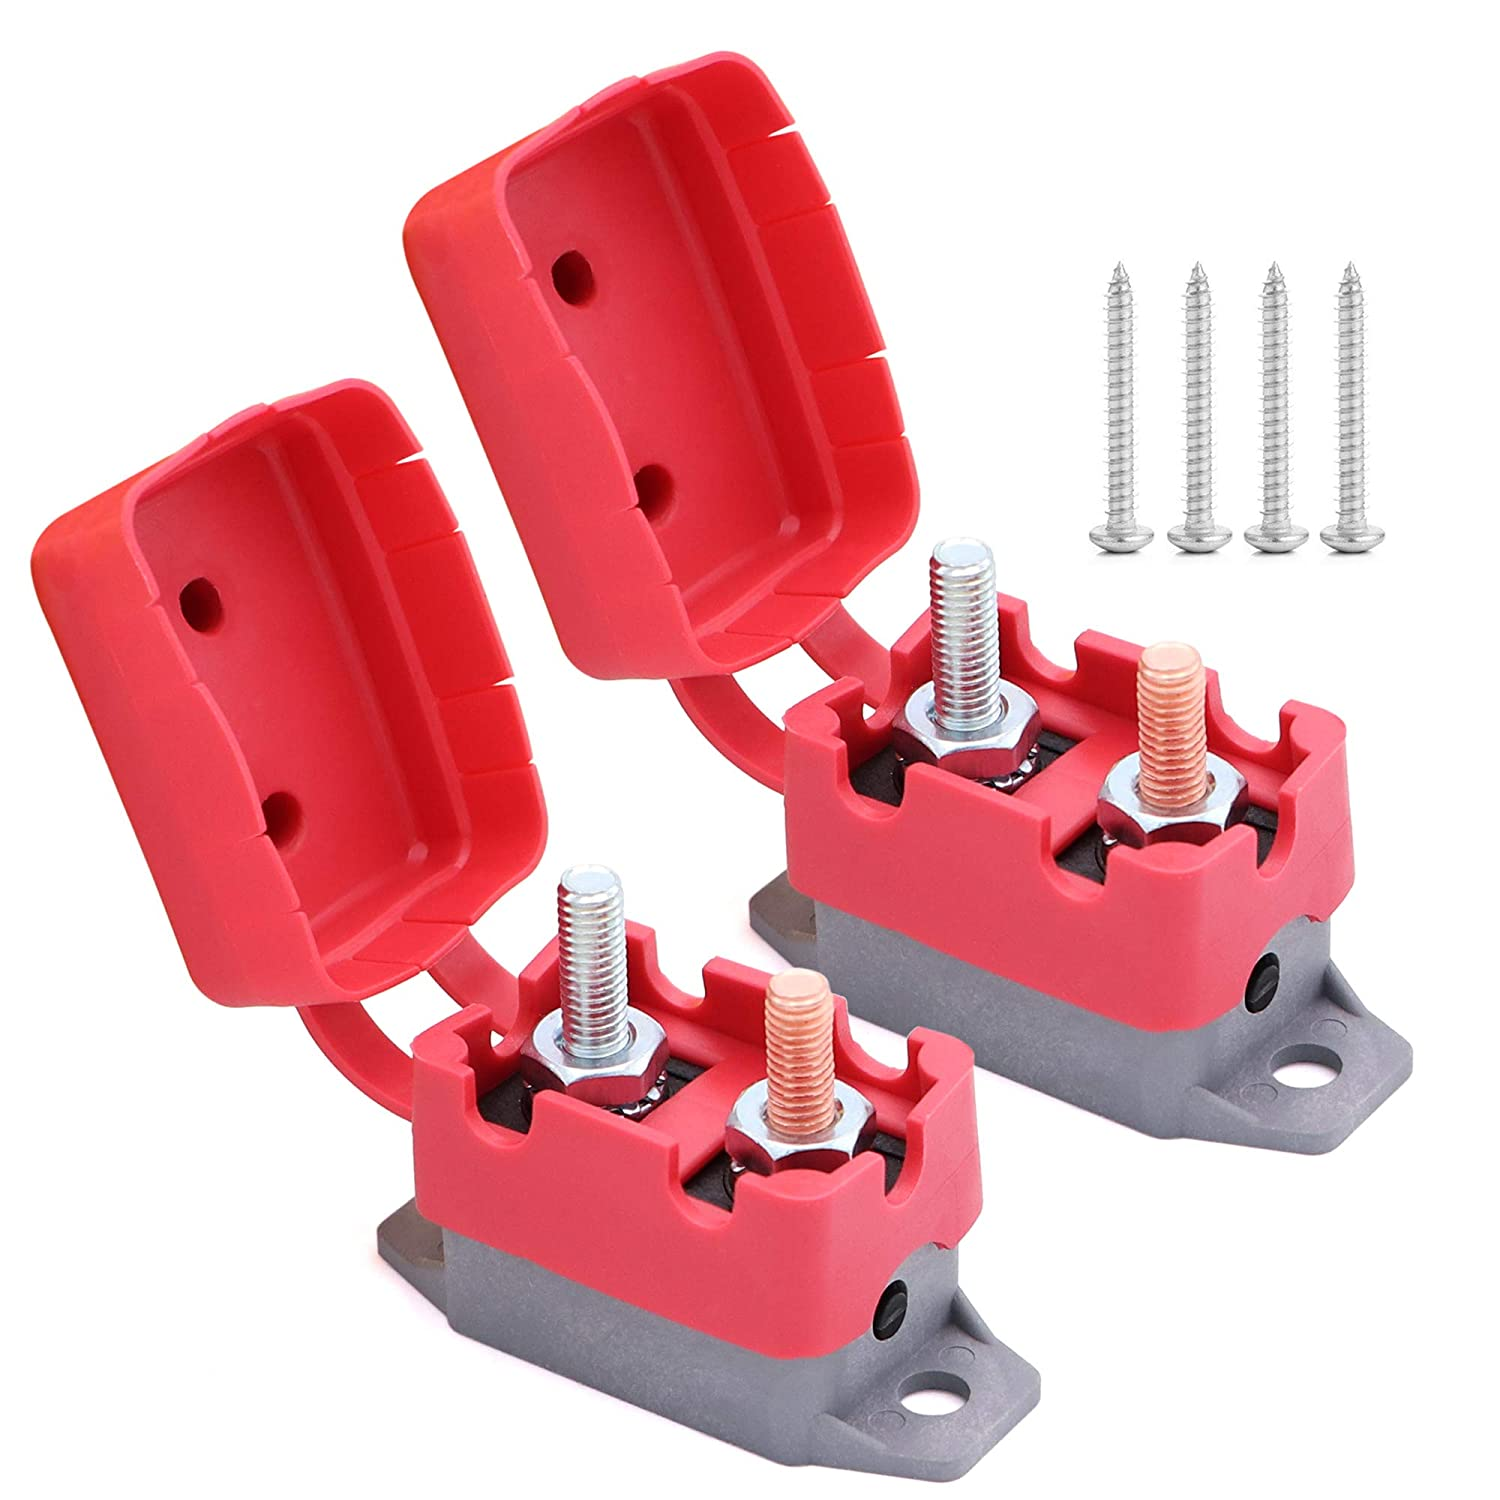 buses trucks etc electric cars 2pcs 12V//24V 10A Automatic Reset Circuit Breaker with Cover Stud Bolt Type for battery chargers car engines